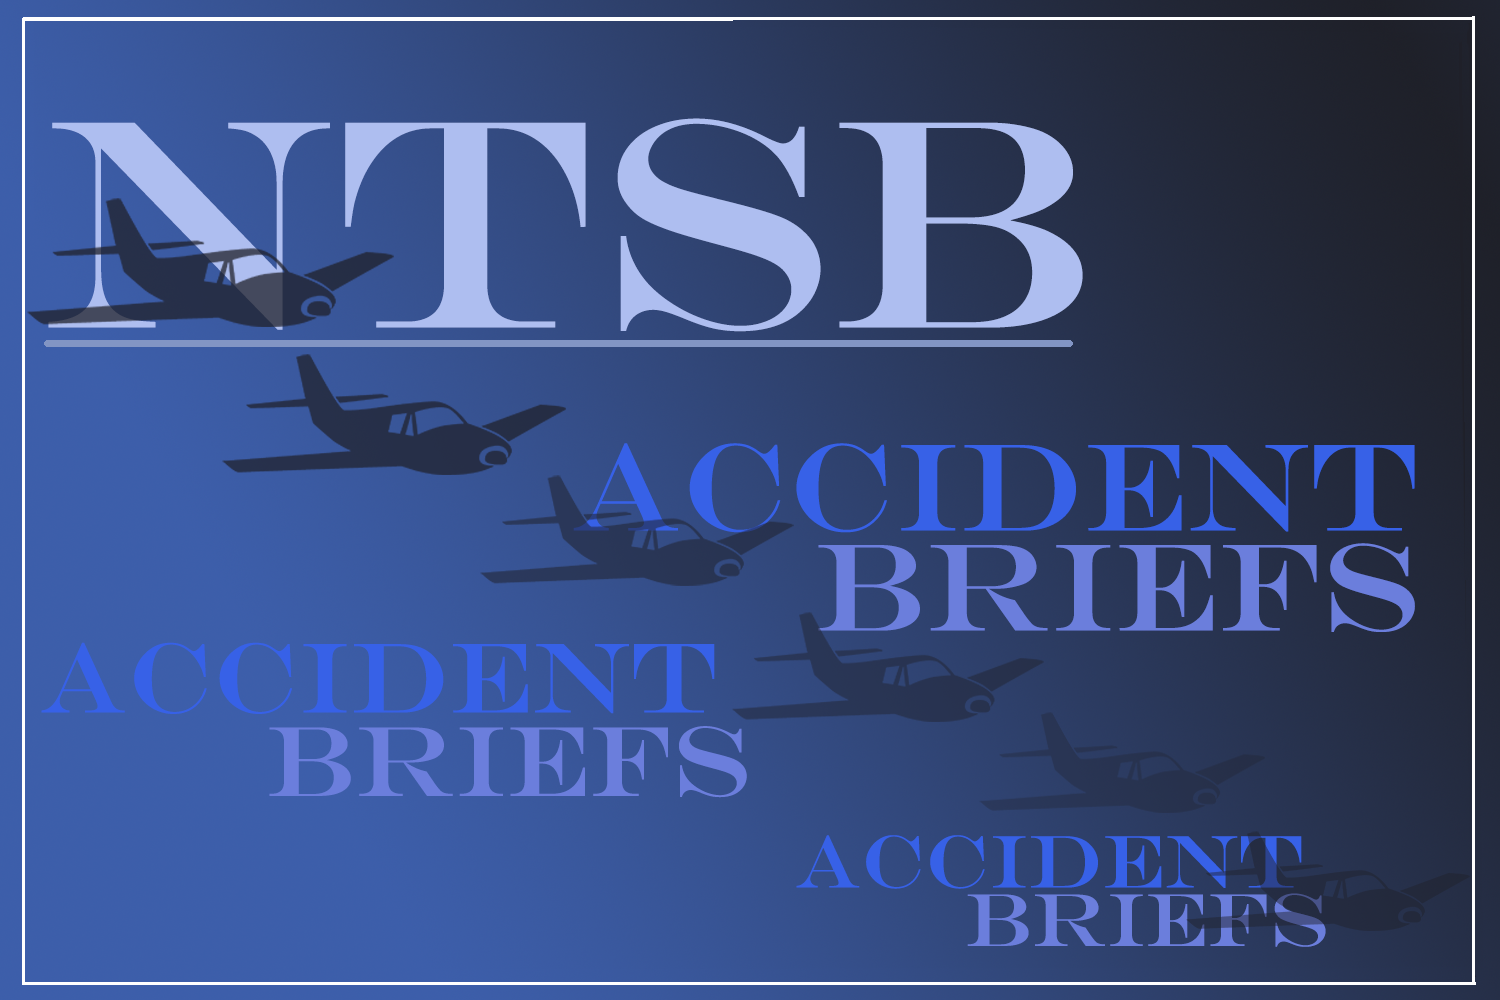 NTSB accident brief